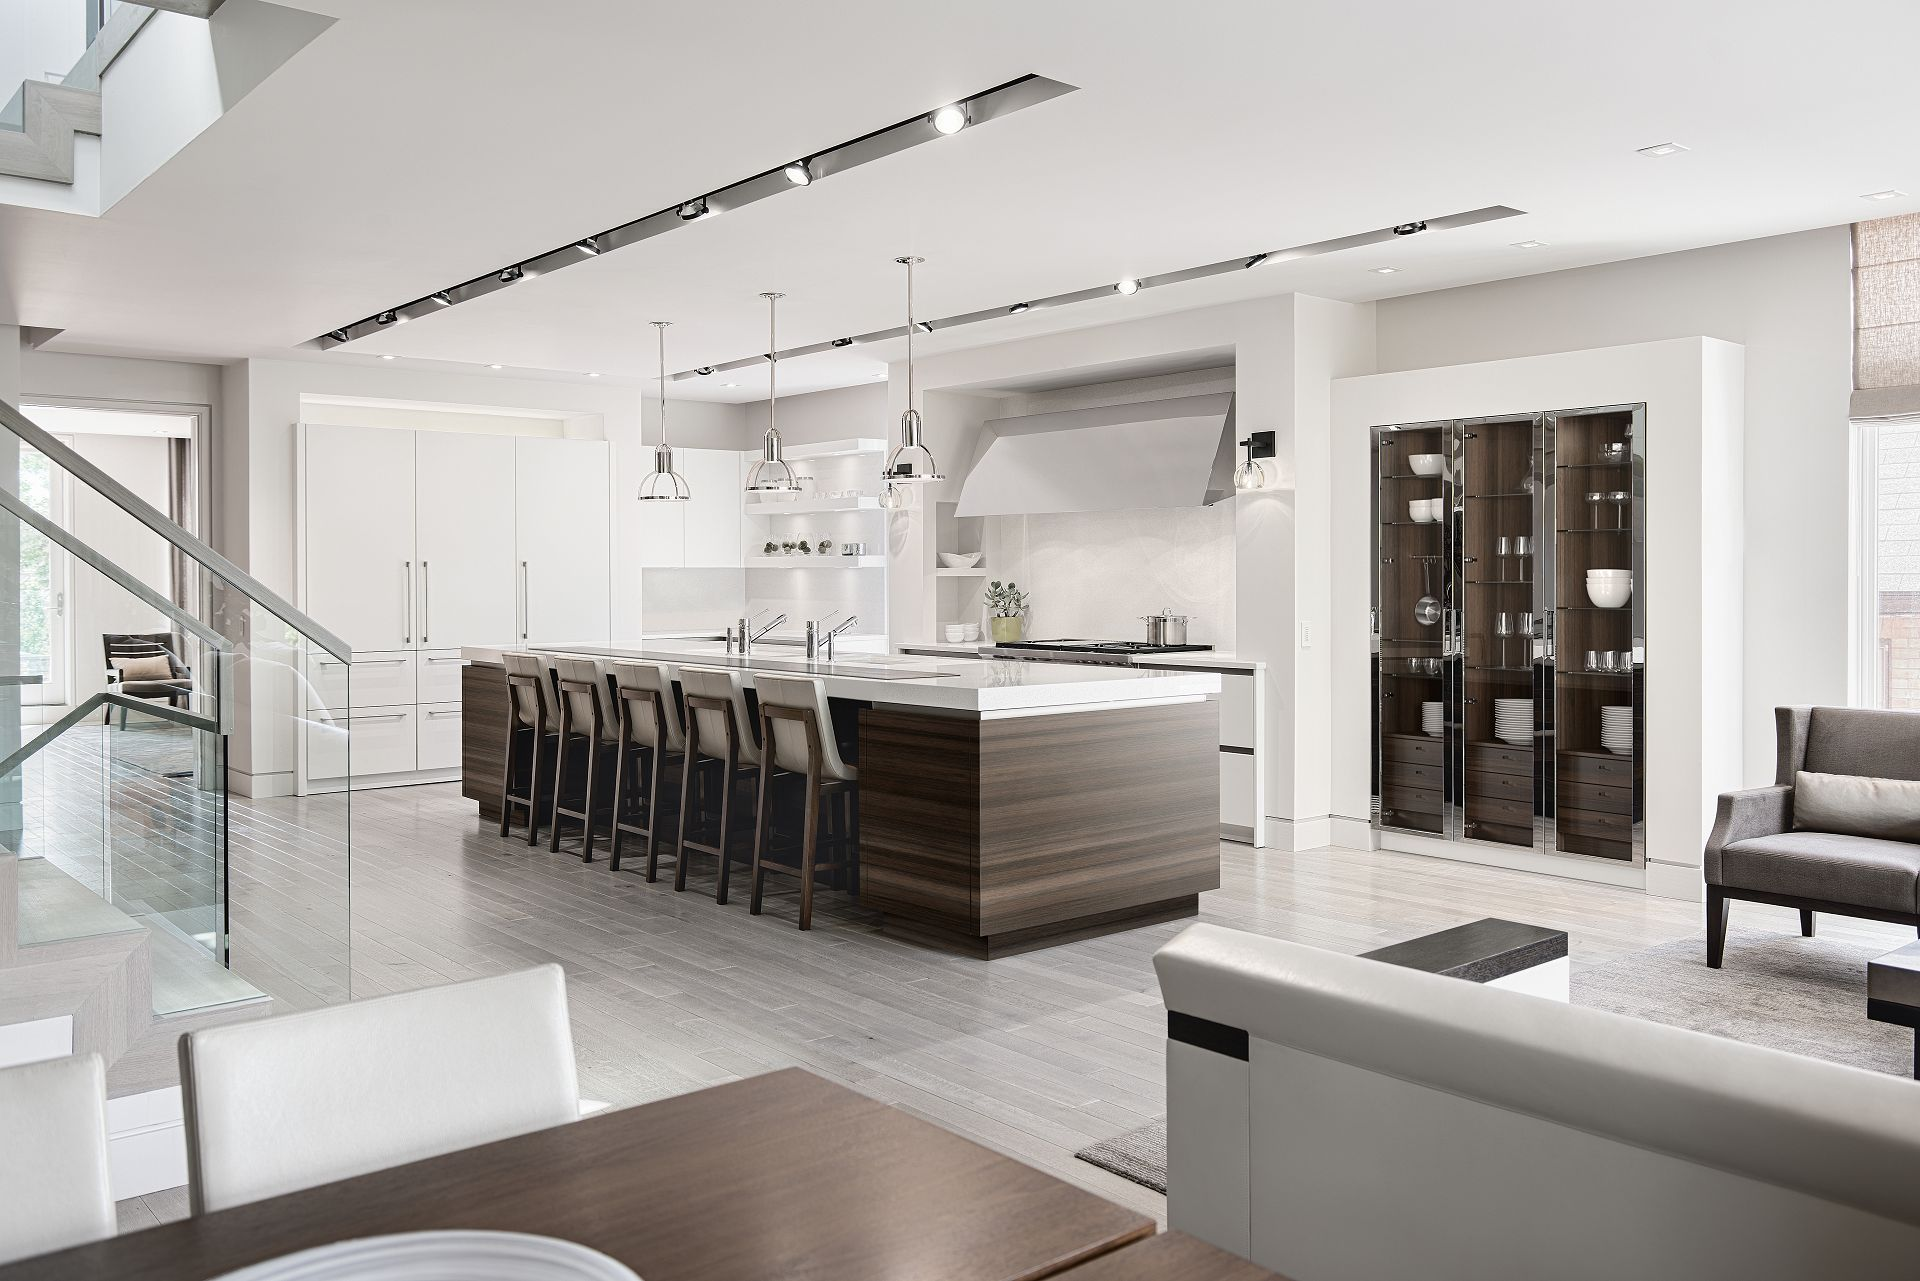 But Is A German Made Kitchen Really The One For You? Read On And Find Out!